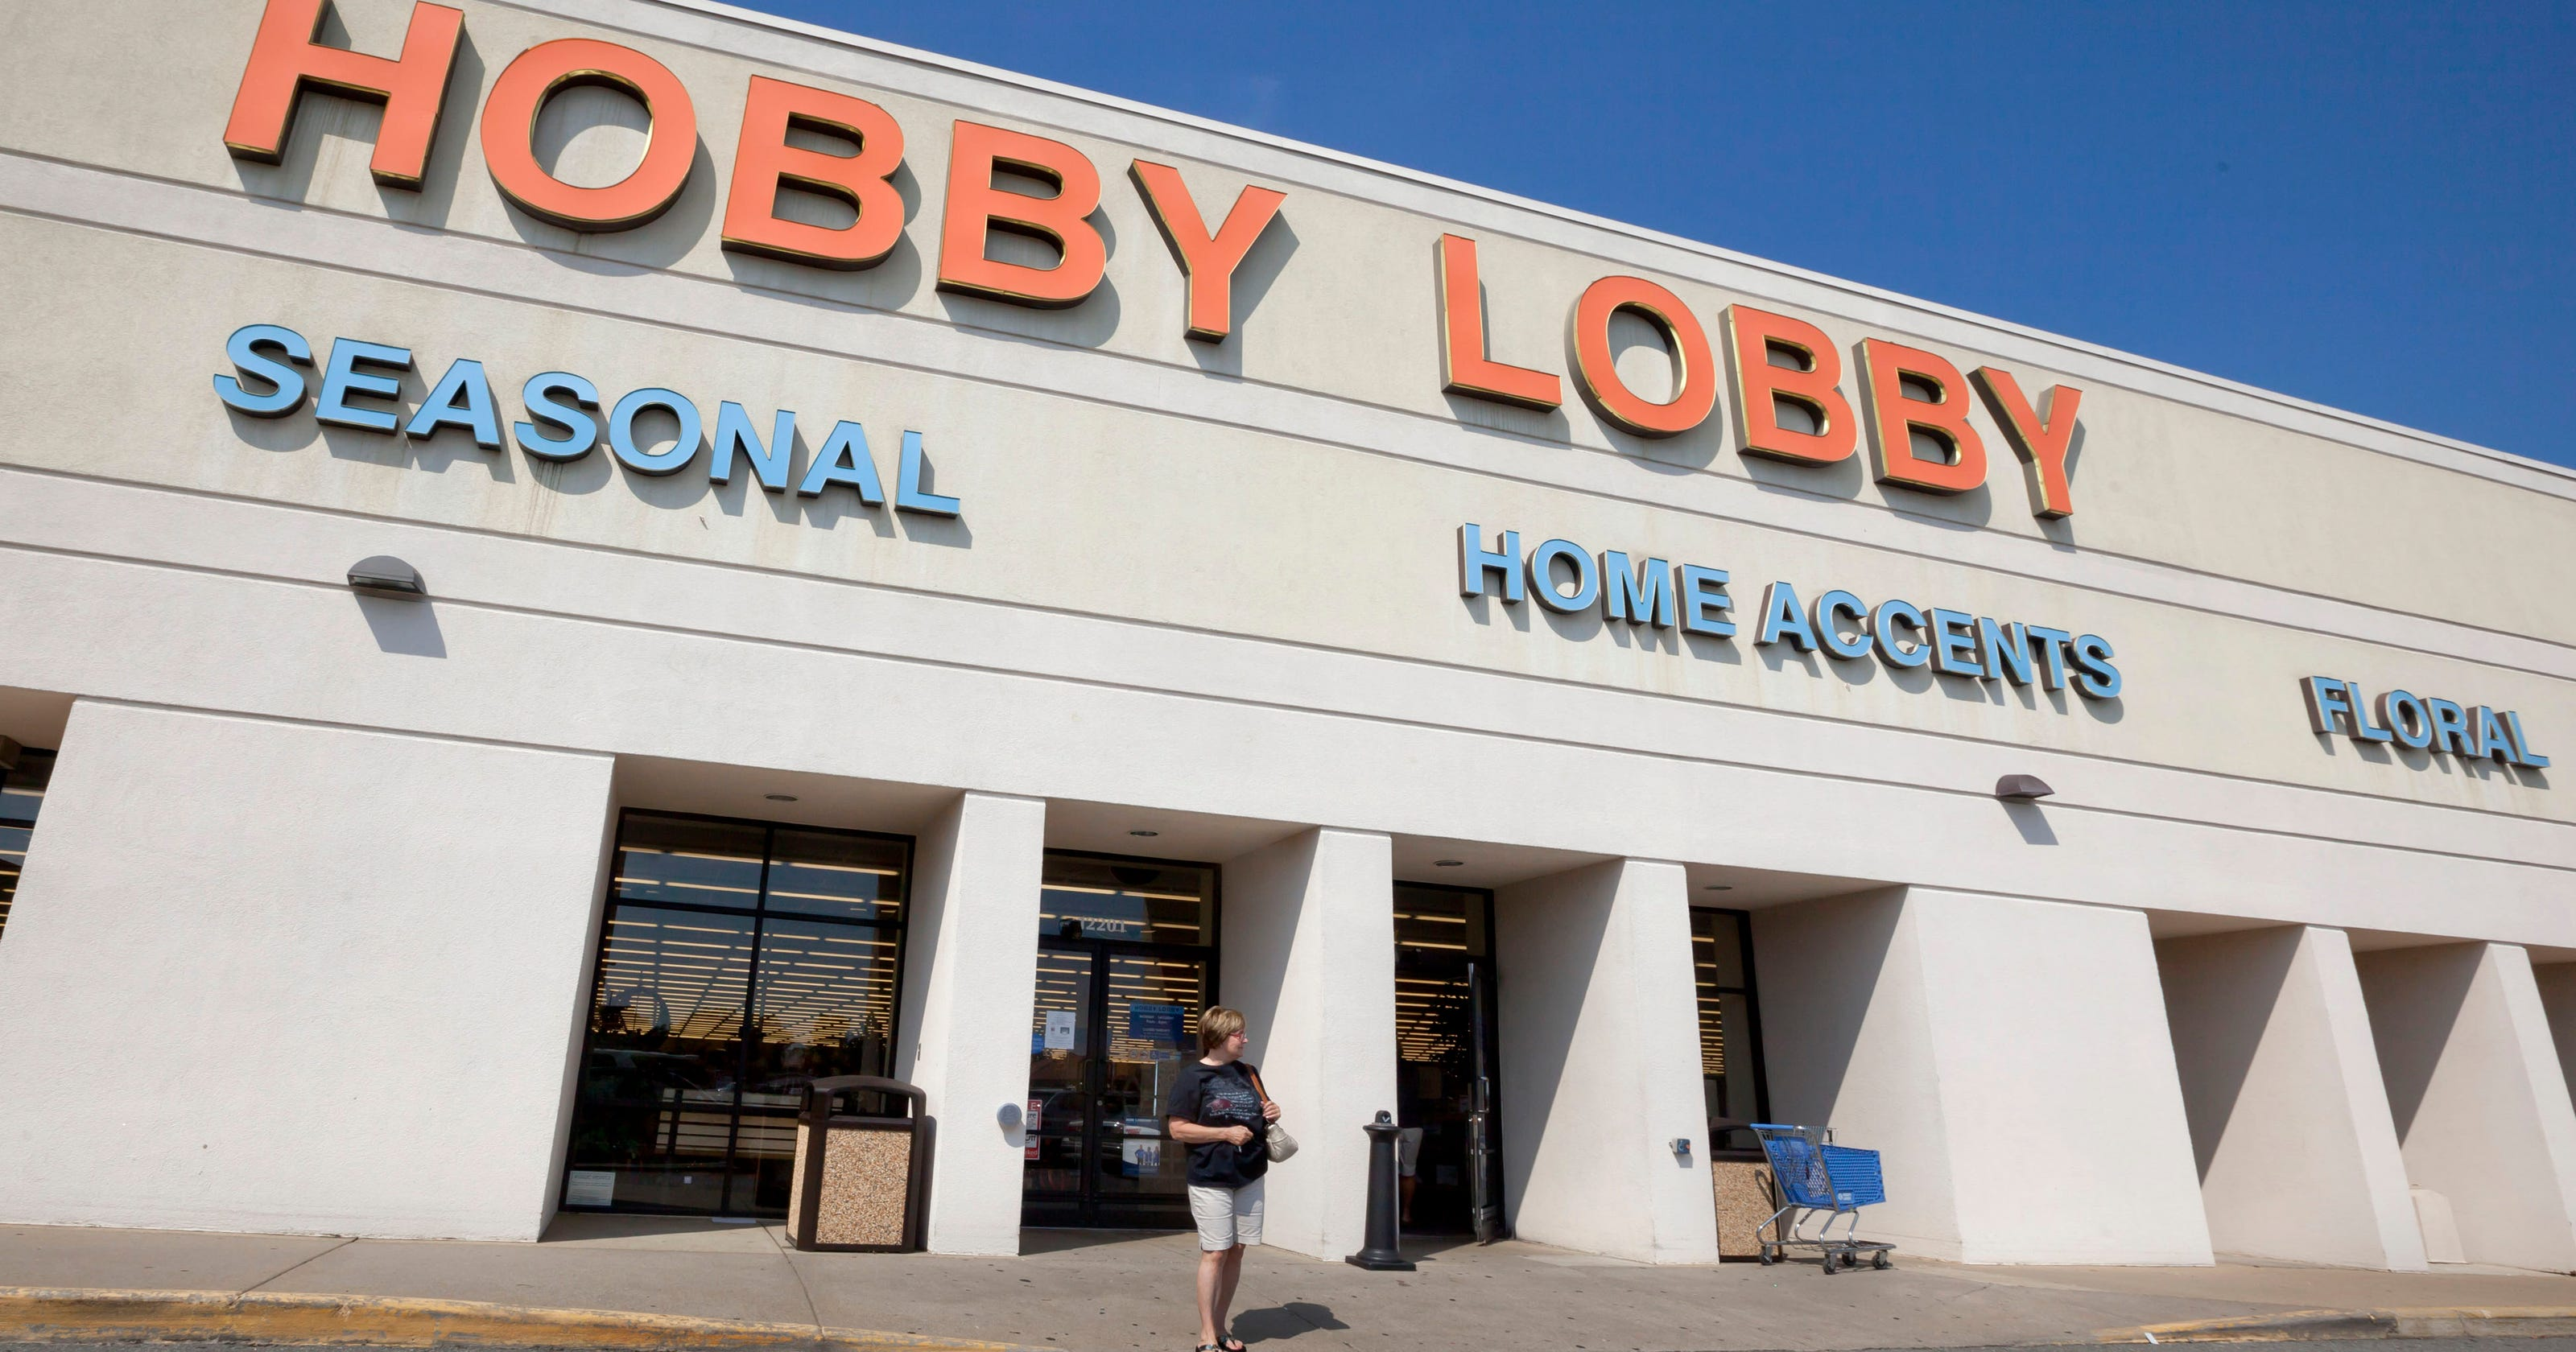 4 things to know about the Hobby Lobby decision